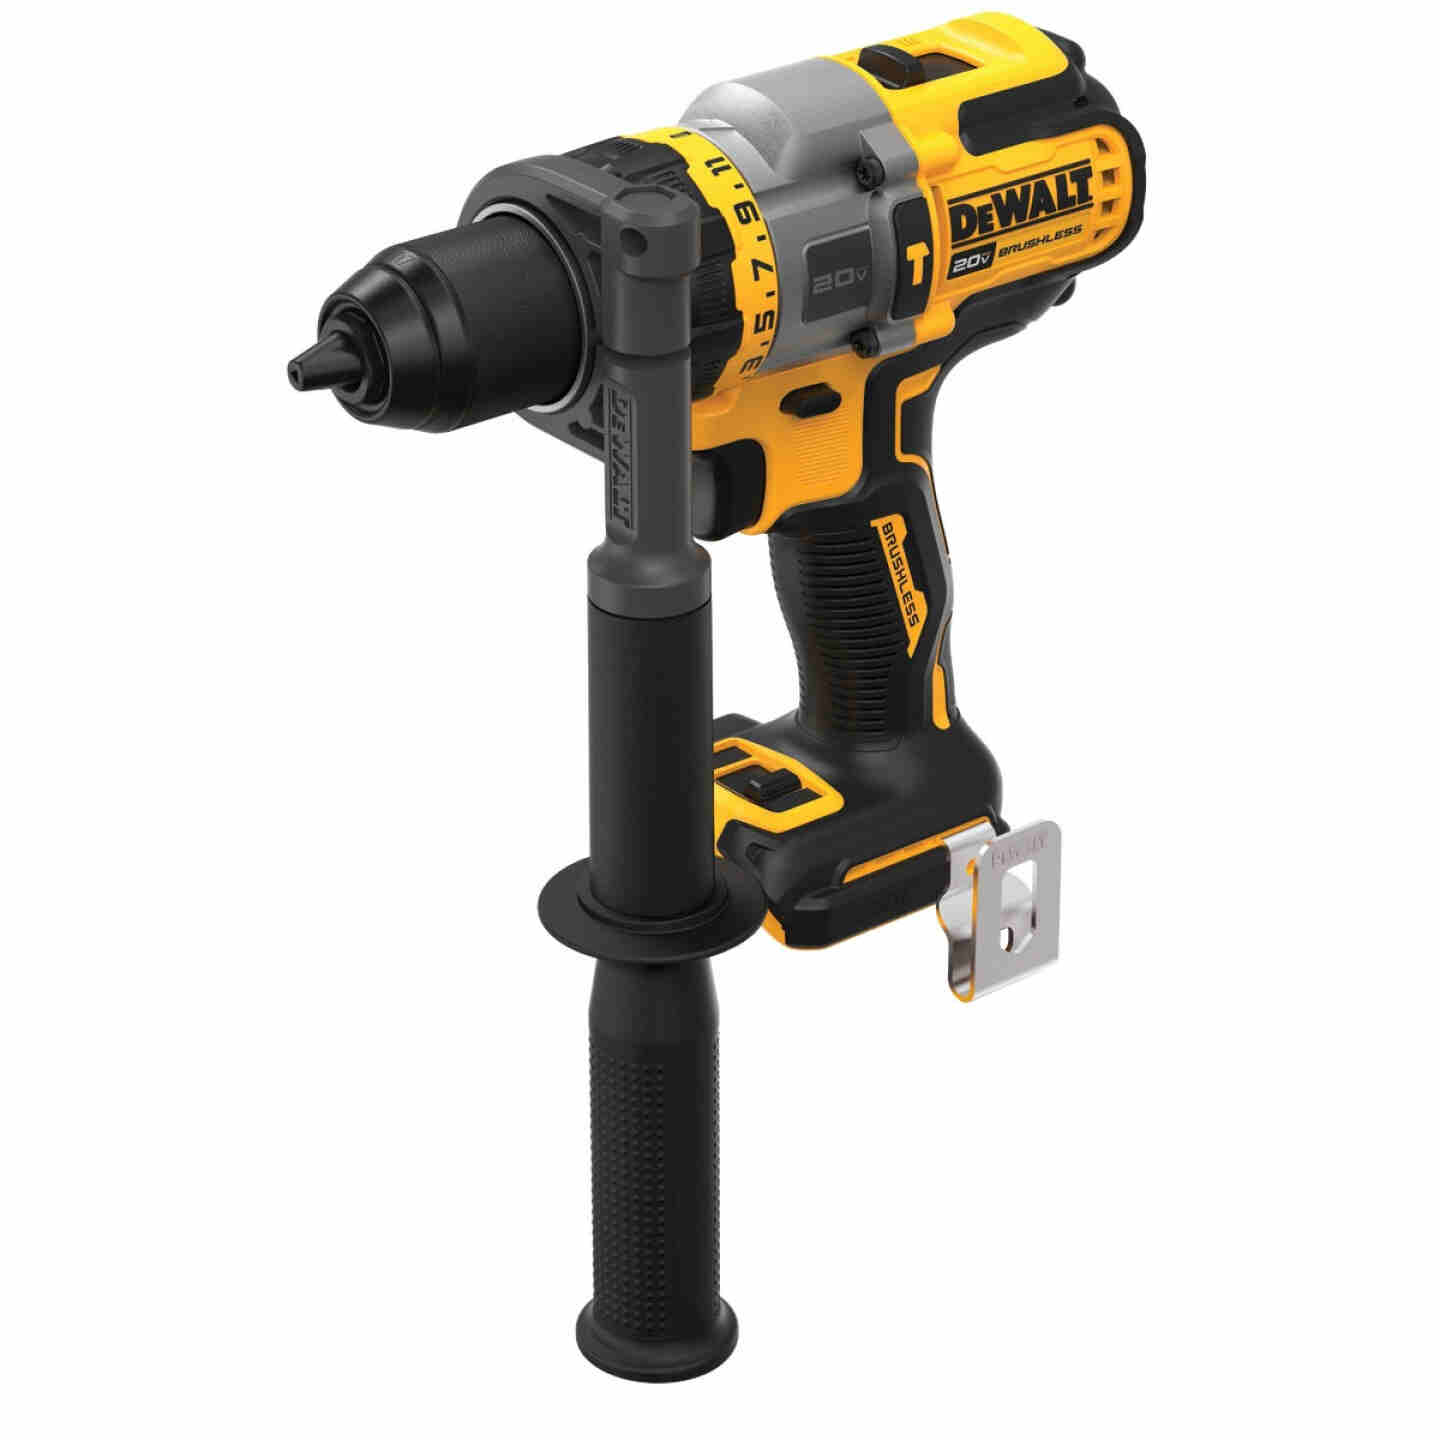 DeWalt 20 Volt MAX Lithium-Ion Brushless 1/2 In. Cordless Hammer Drill with Flexvolt Advantage (Bare Tool) Image 1